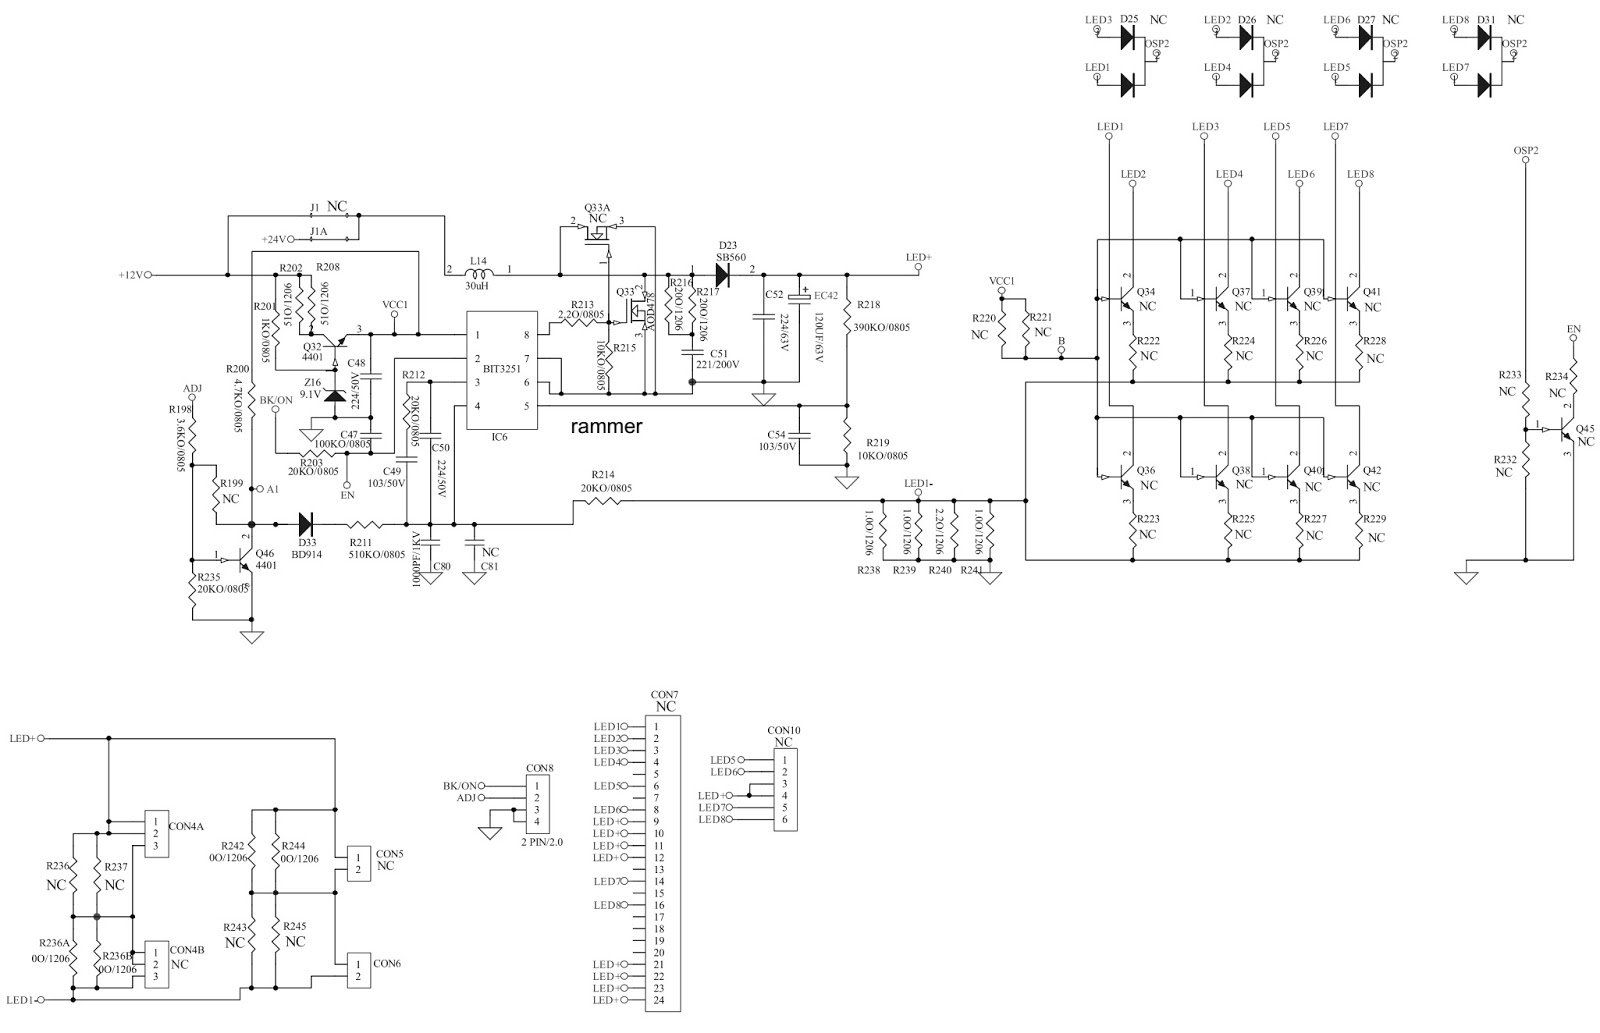 MP123T-CH SMPS Schematics – SMPS schematic